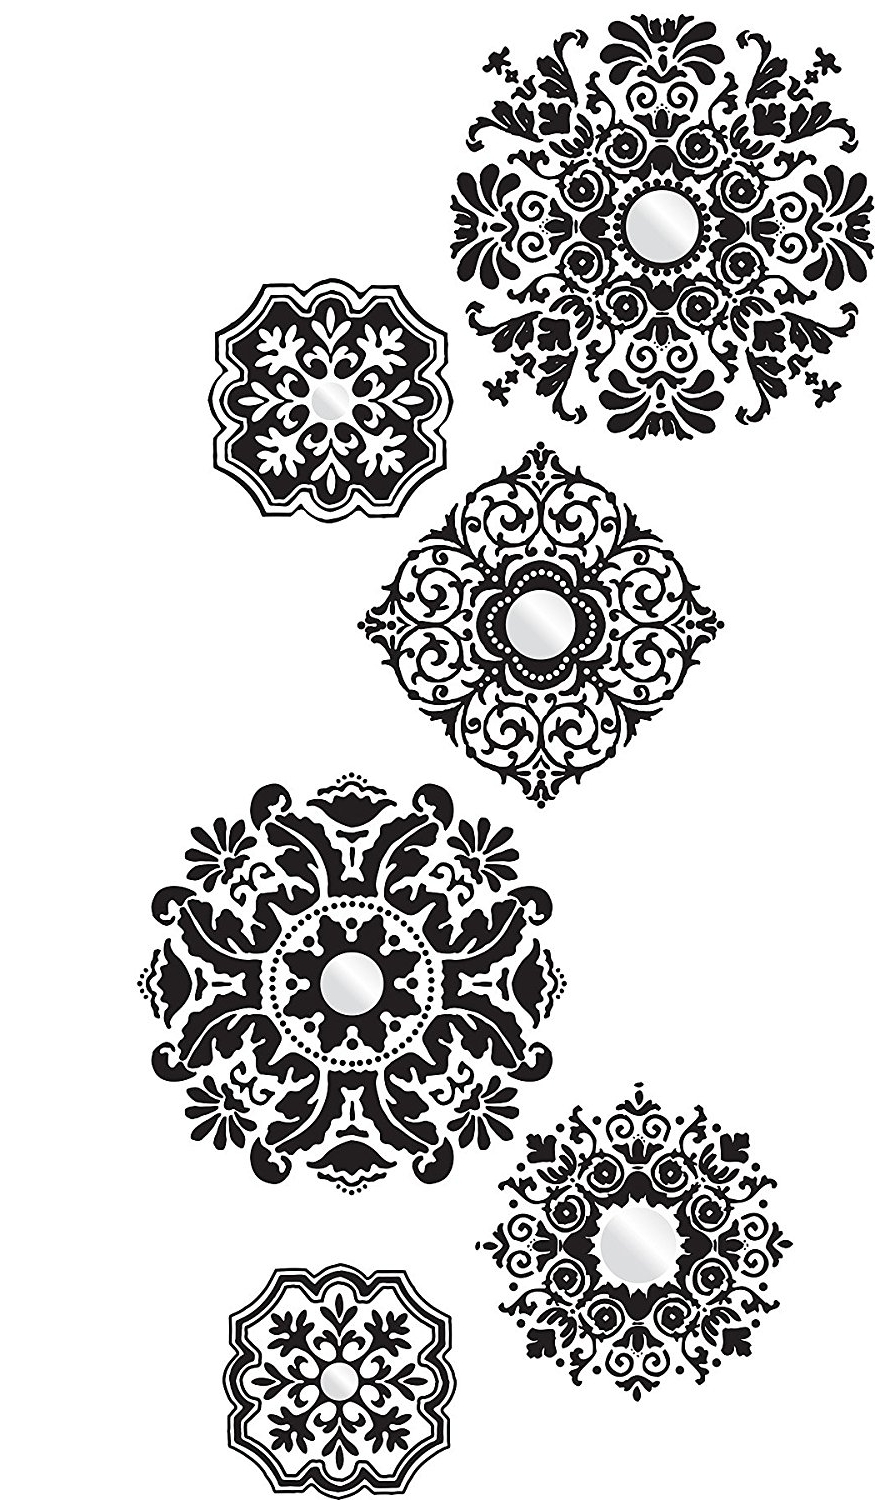 Wall Pops Wpk96845 Peel & Stick Baroque Large Wall Art Kit – Wall In Well Known Filigree Wall Art (View 10 of 15)